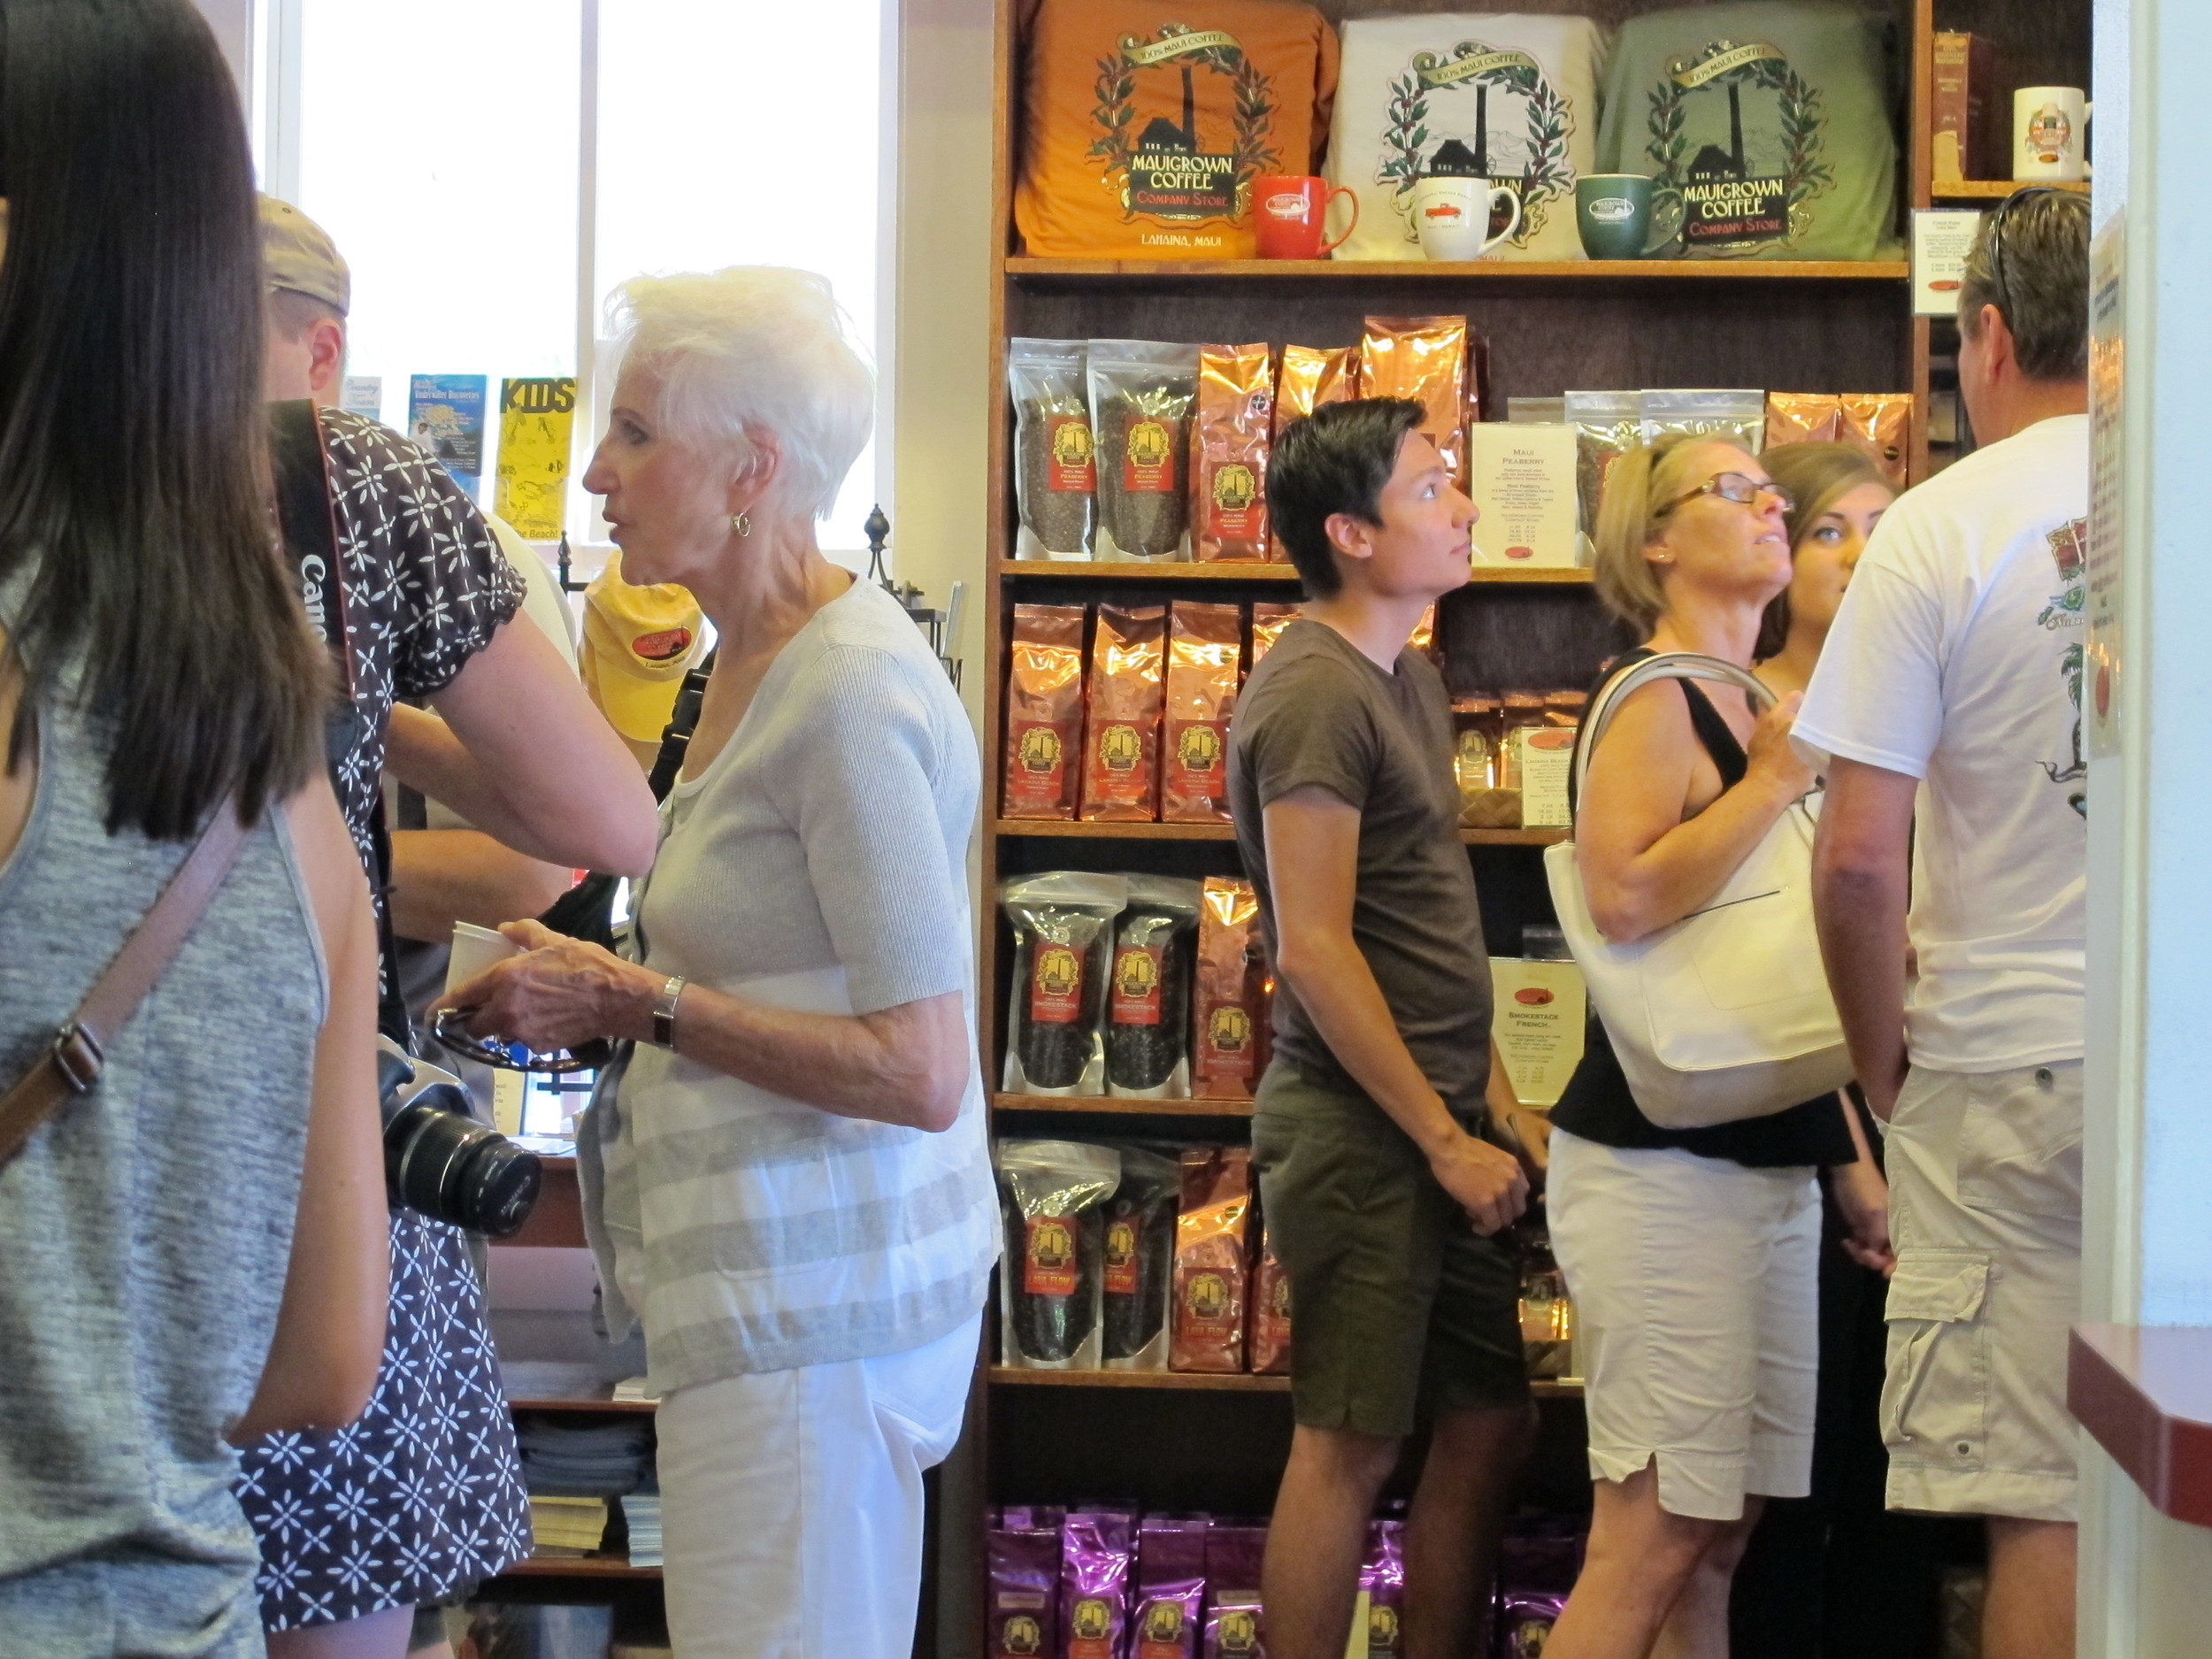 The Ka'anapali Estate Company Store sells brewed coffee, whole roasted beans, green coffee, shirts, and mugs.